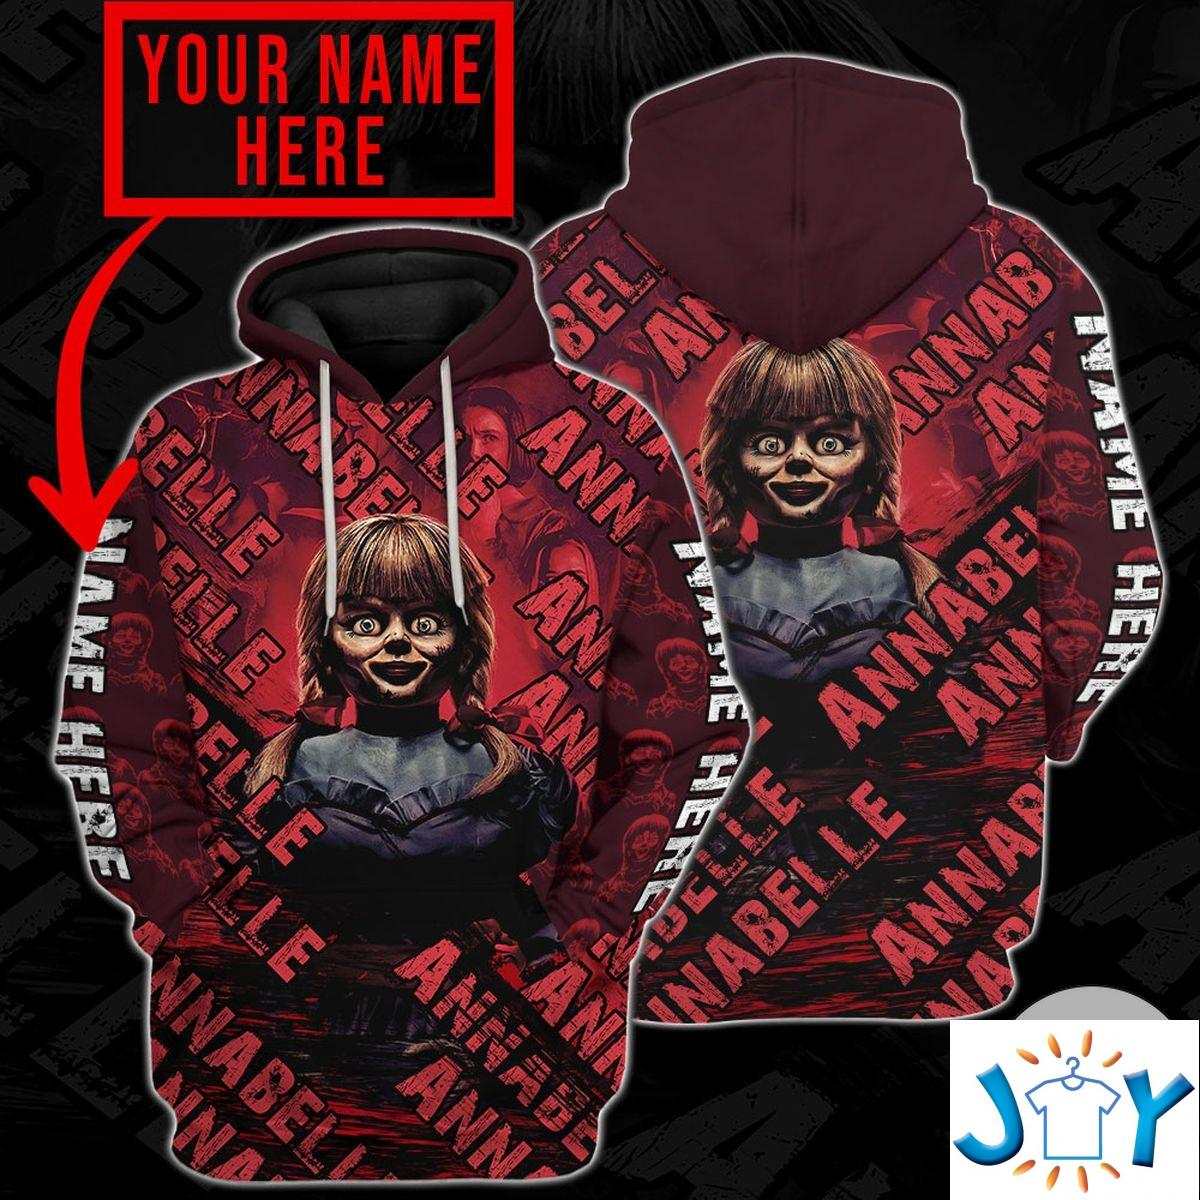 Personalized Annabelle Hoodie